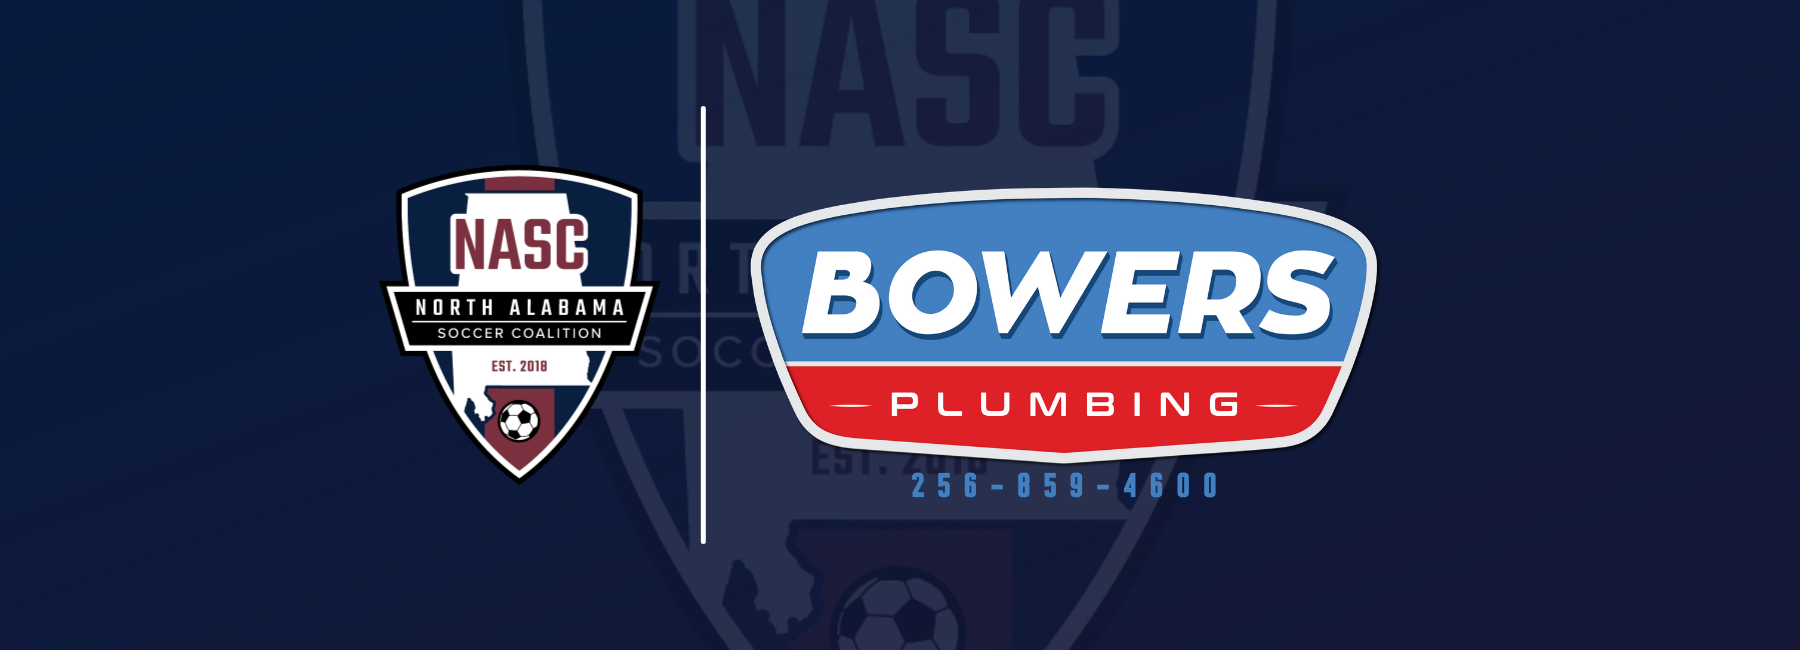 NASC PARTNERS WITH BOWERS PLUMBING